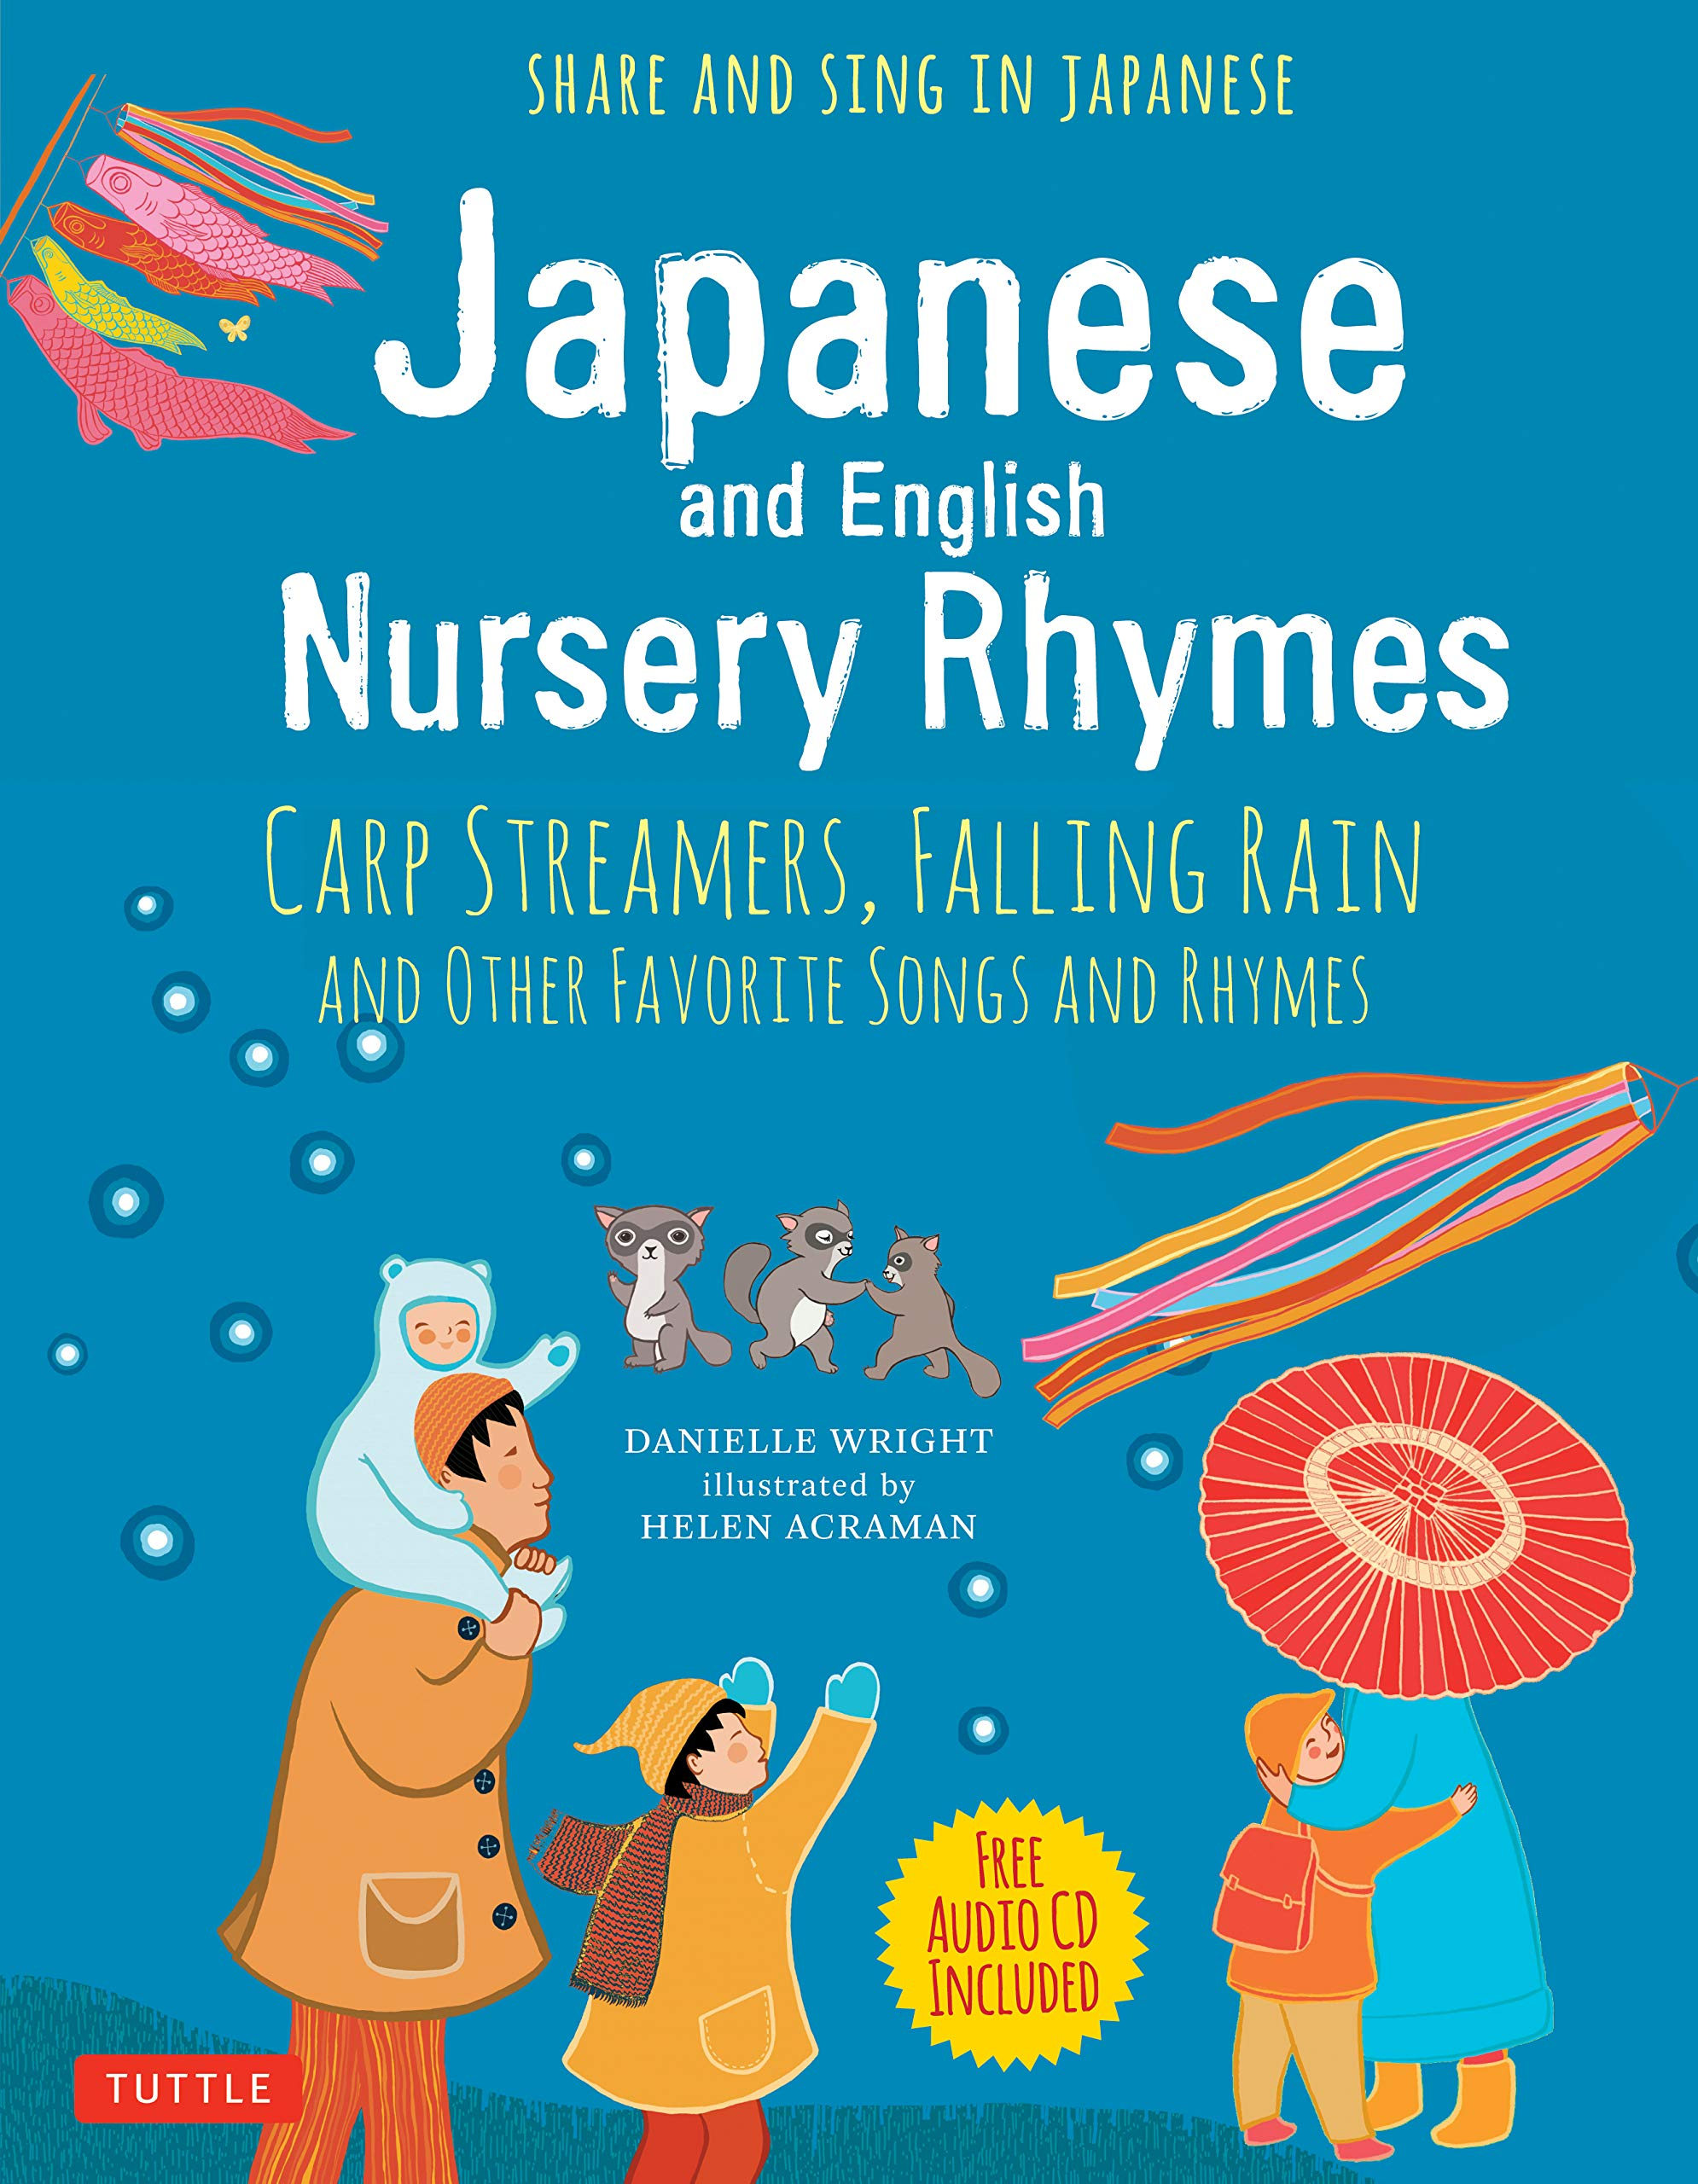 Japanese and English Nursery Rhymes: Carp Streamers, Falling Rain and Other Favorite Songs and Rhymes (Audio Disc of Rhymes in Japanese Included) by Tuttle Publishing